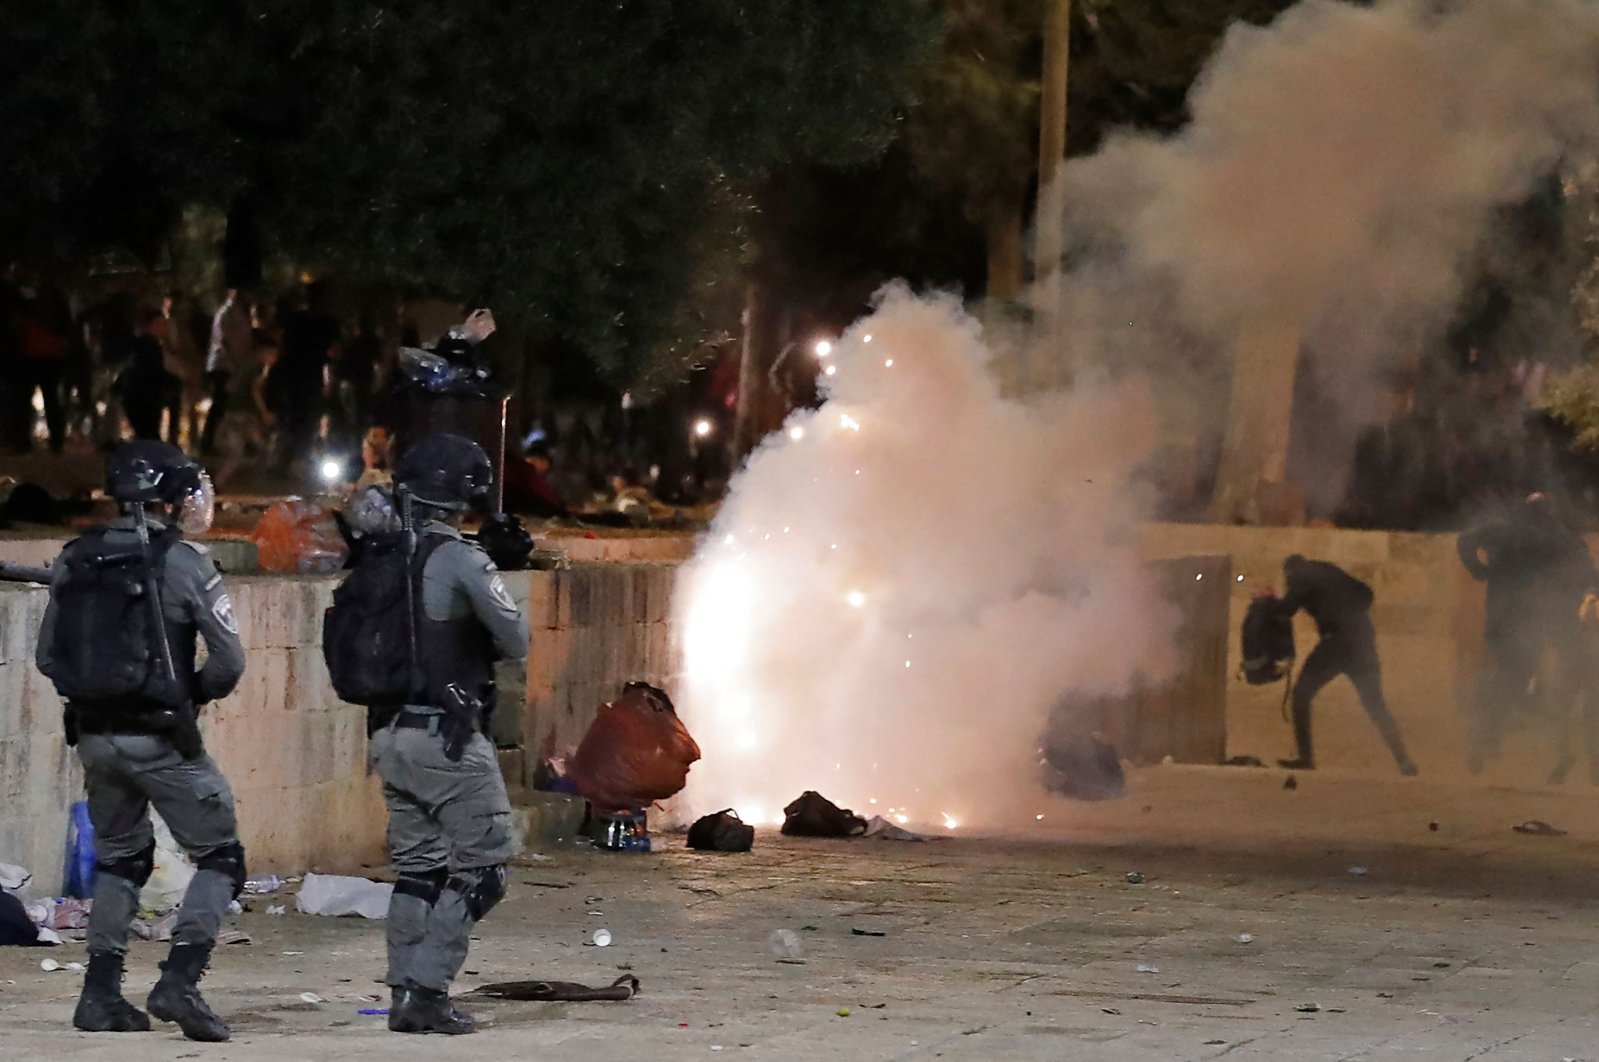 Tear gas billows as Israeli police officers raid the Al-Aqsa Mosque and attack Palestinian worshippers in East Jerusalem, May 7, 2021. (AFP Photo)